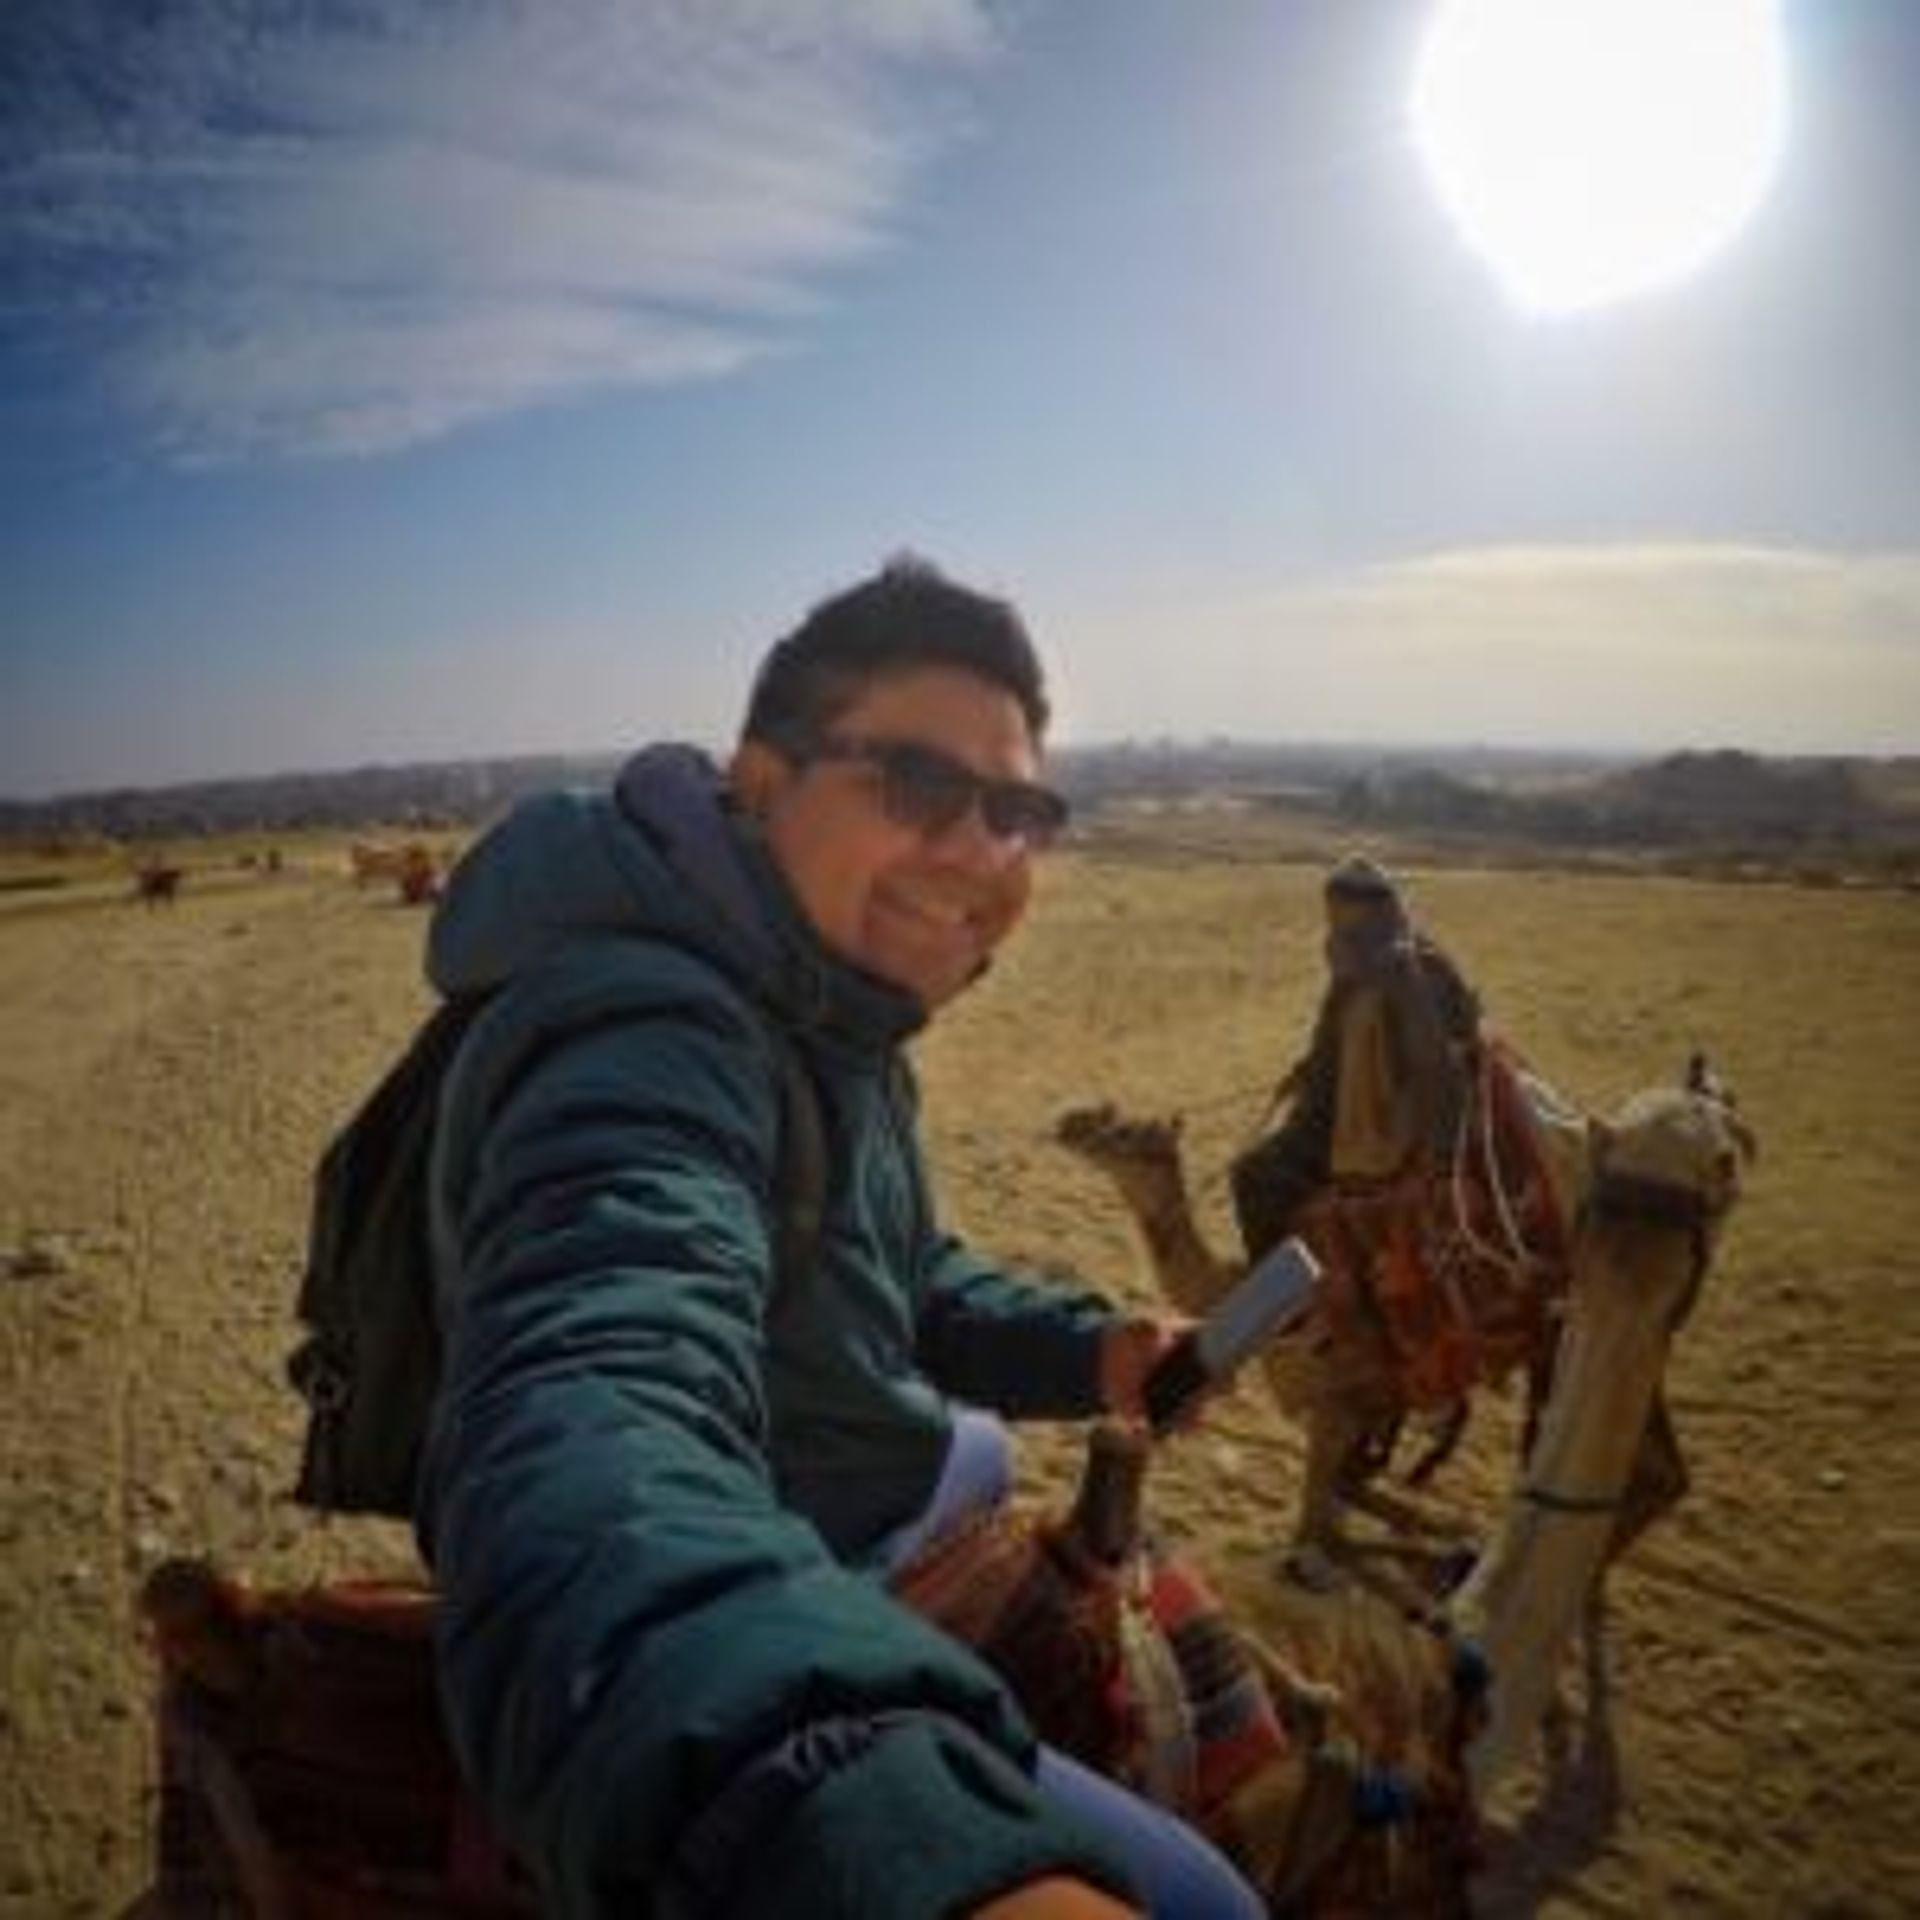 Camilo taking a selfie of himself sitting on a camel.